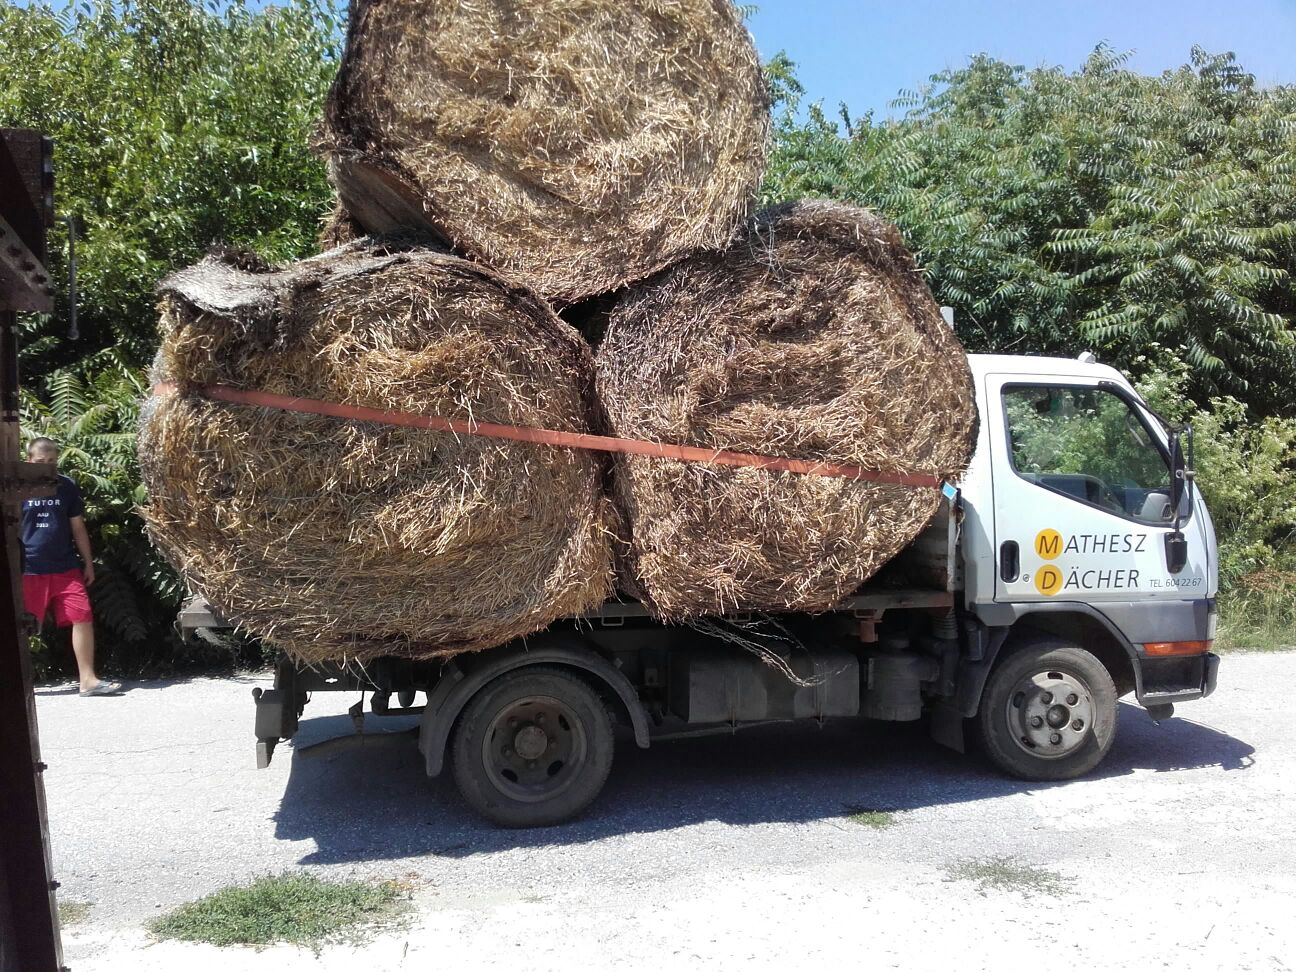 Last of our mulching straw being delivered - this year we've taken 3.5 tonnes for mulching the orchard and fodder area later in the year.